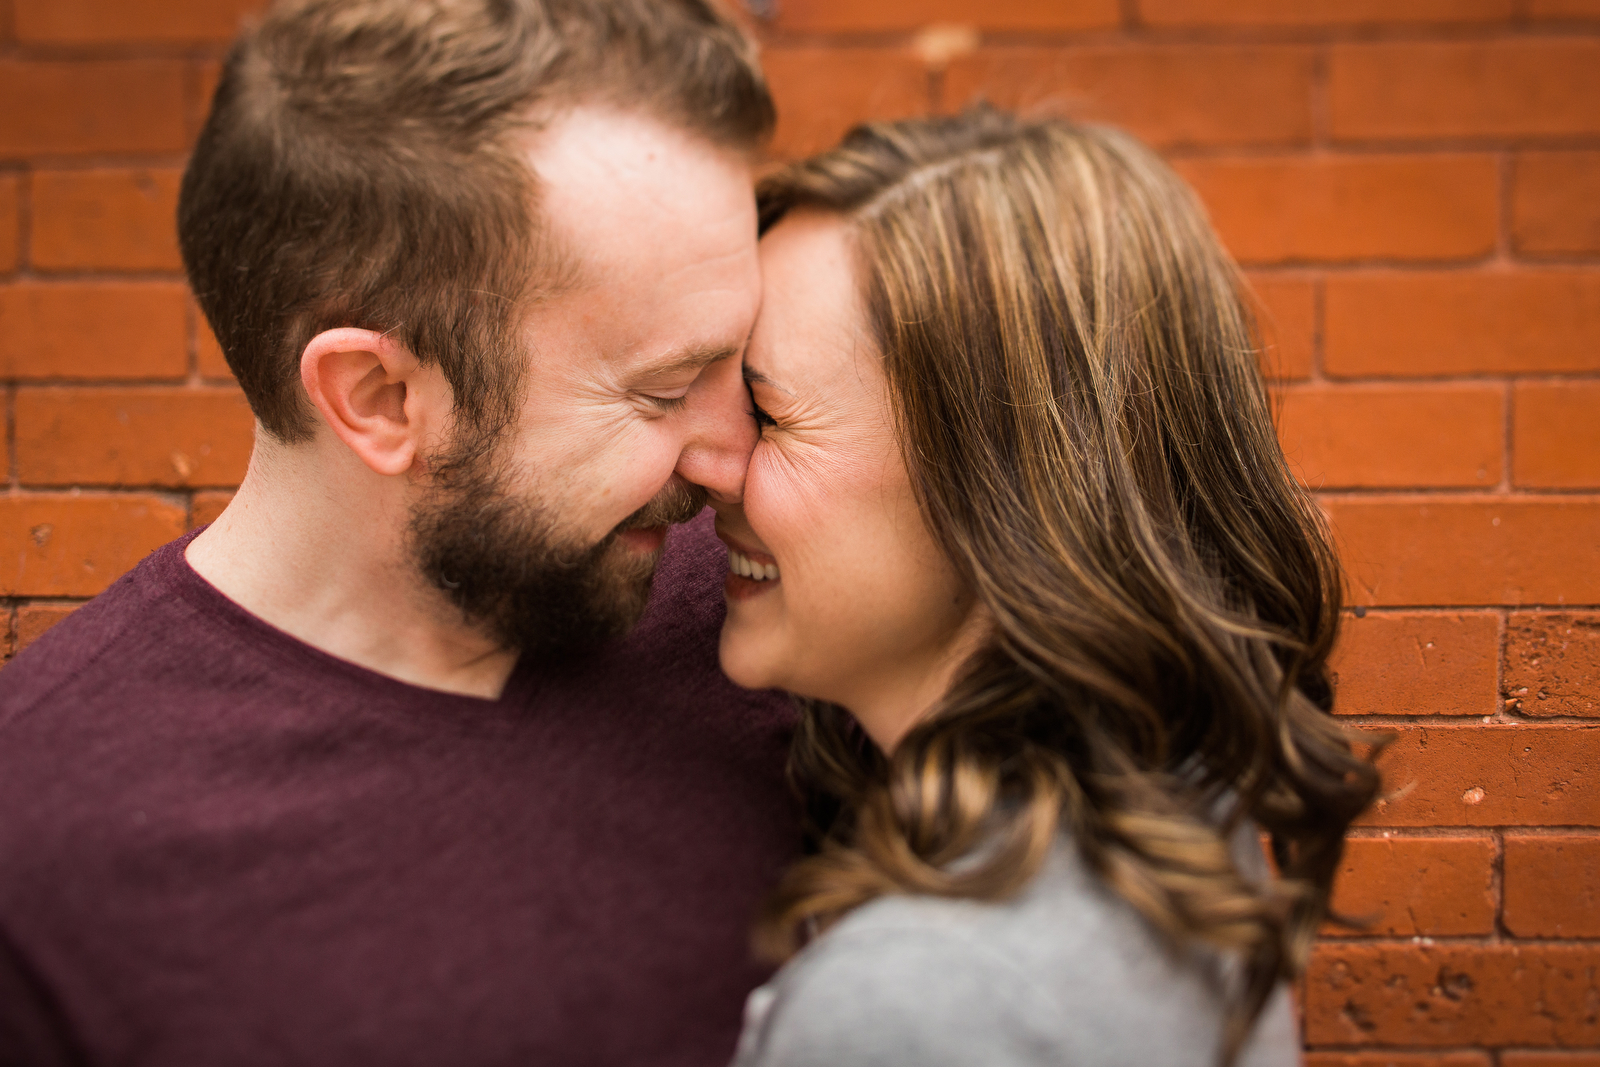 giggling romantic engagement photos